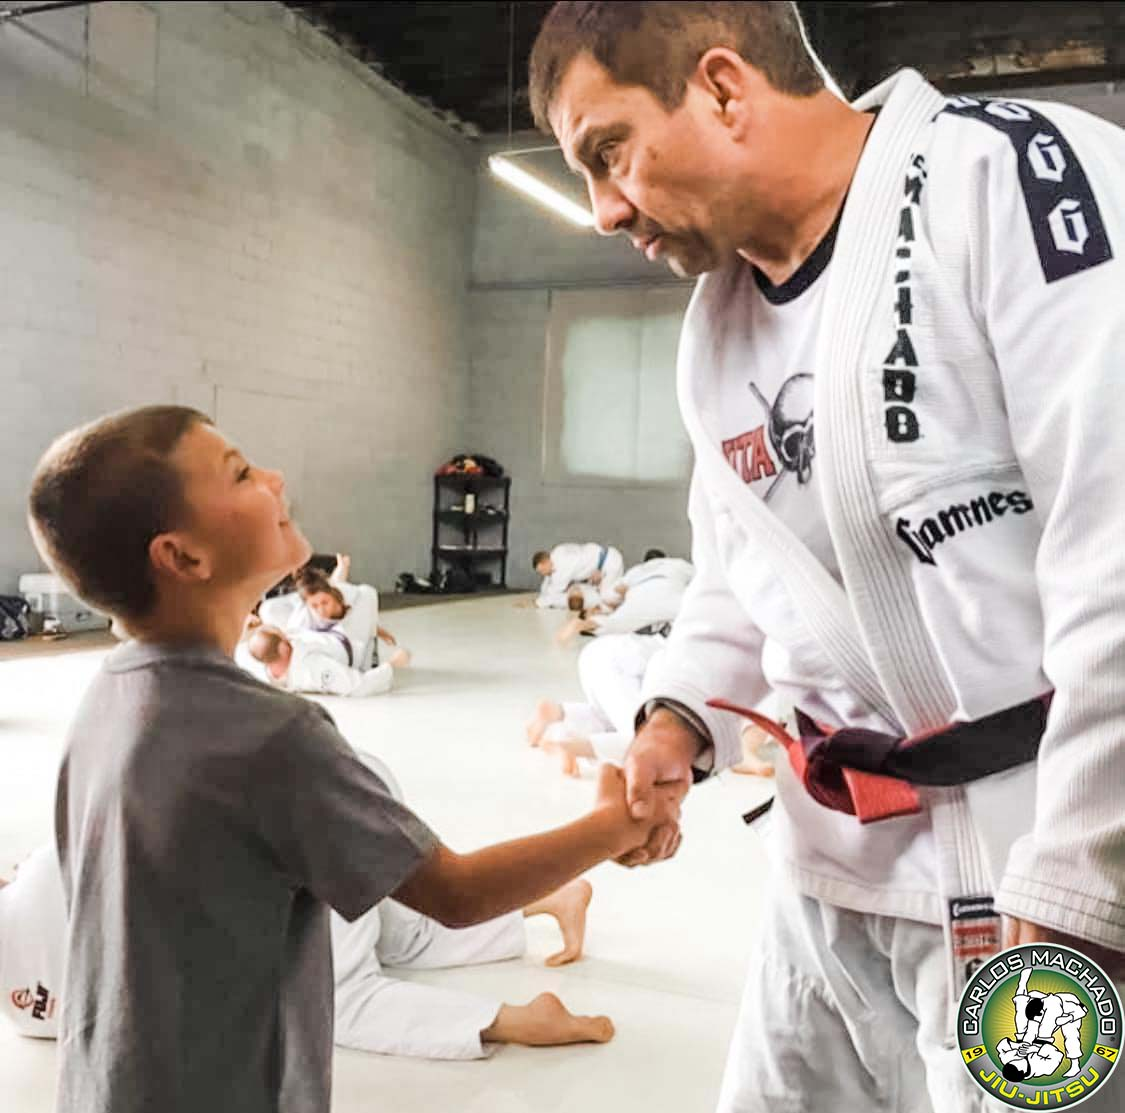 Professor Carlos Machado shaking hands with a new student